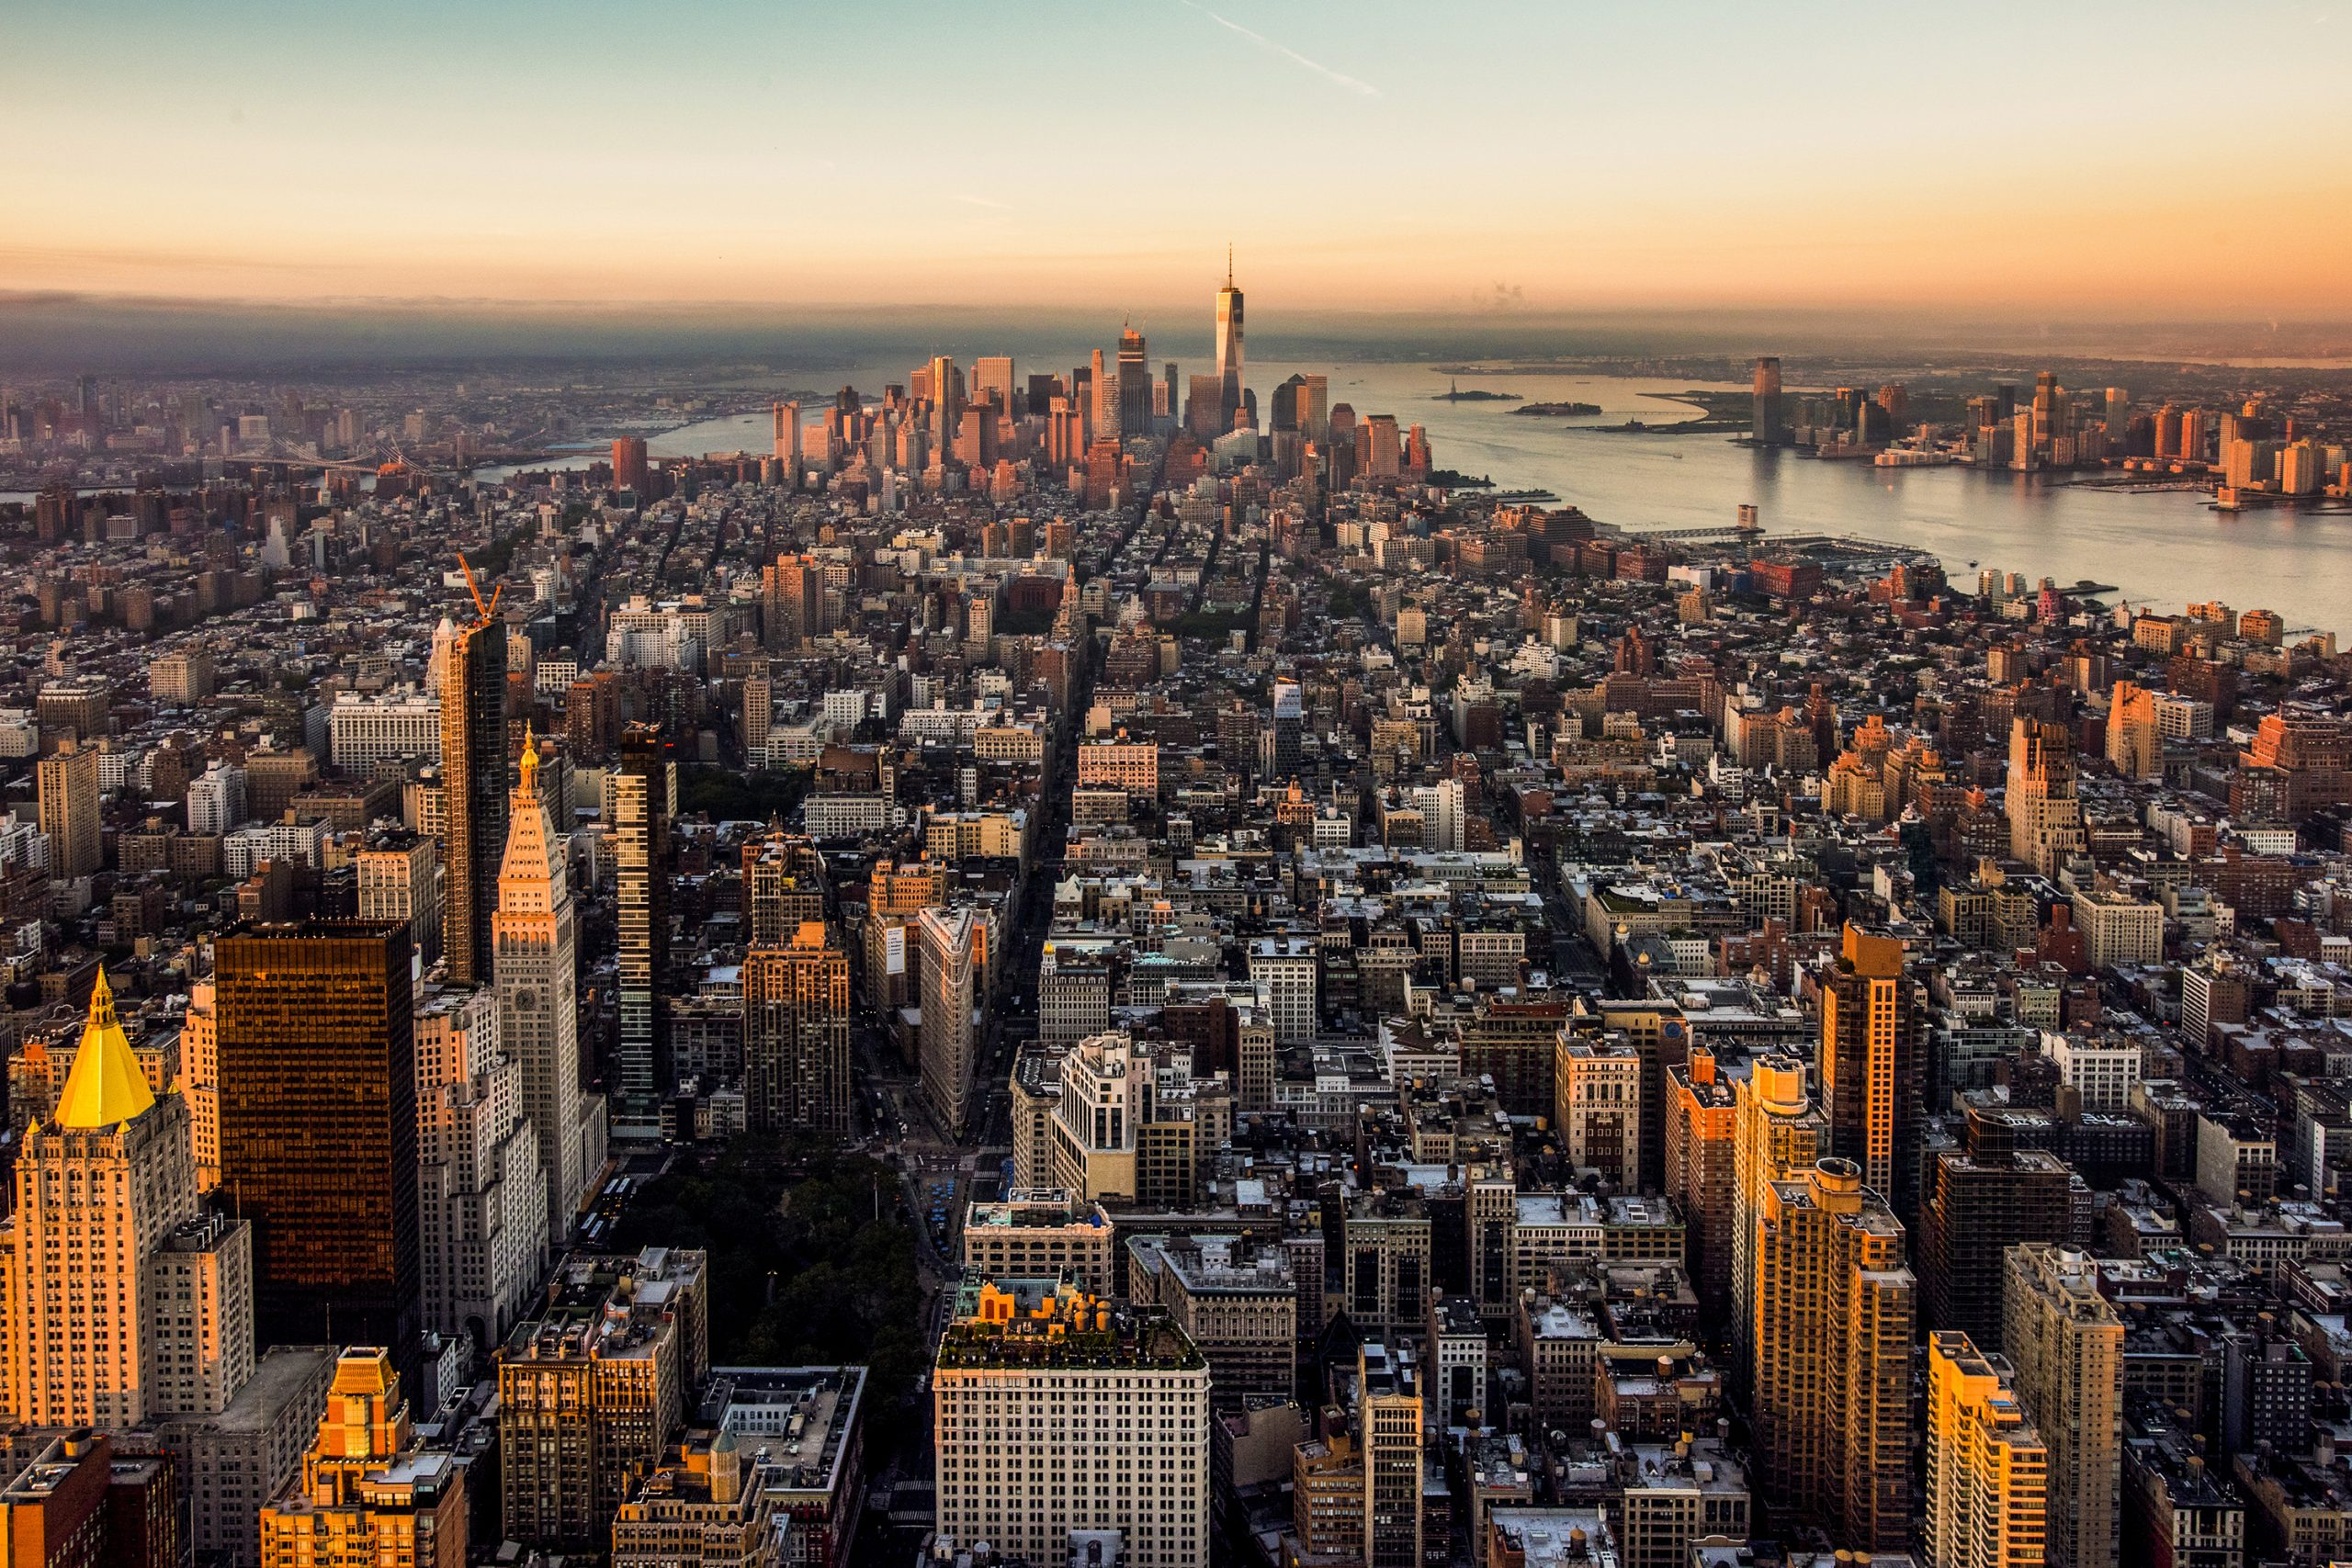 New York observation decks: Empire State Building